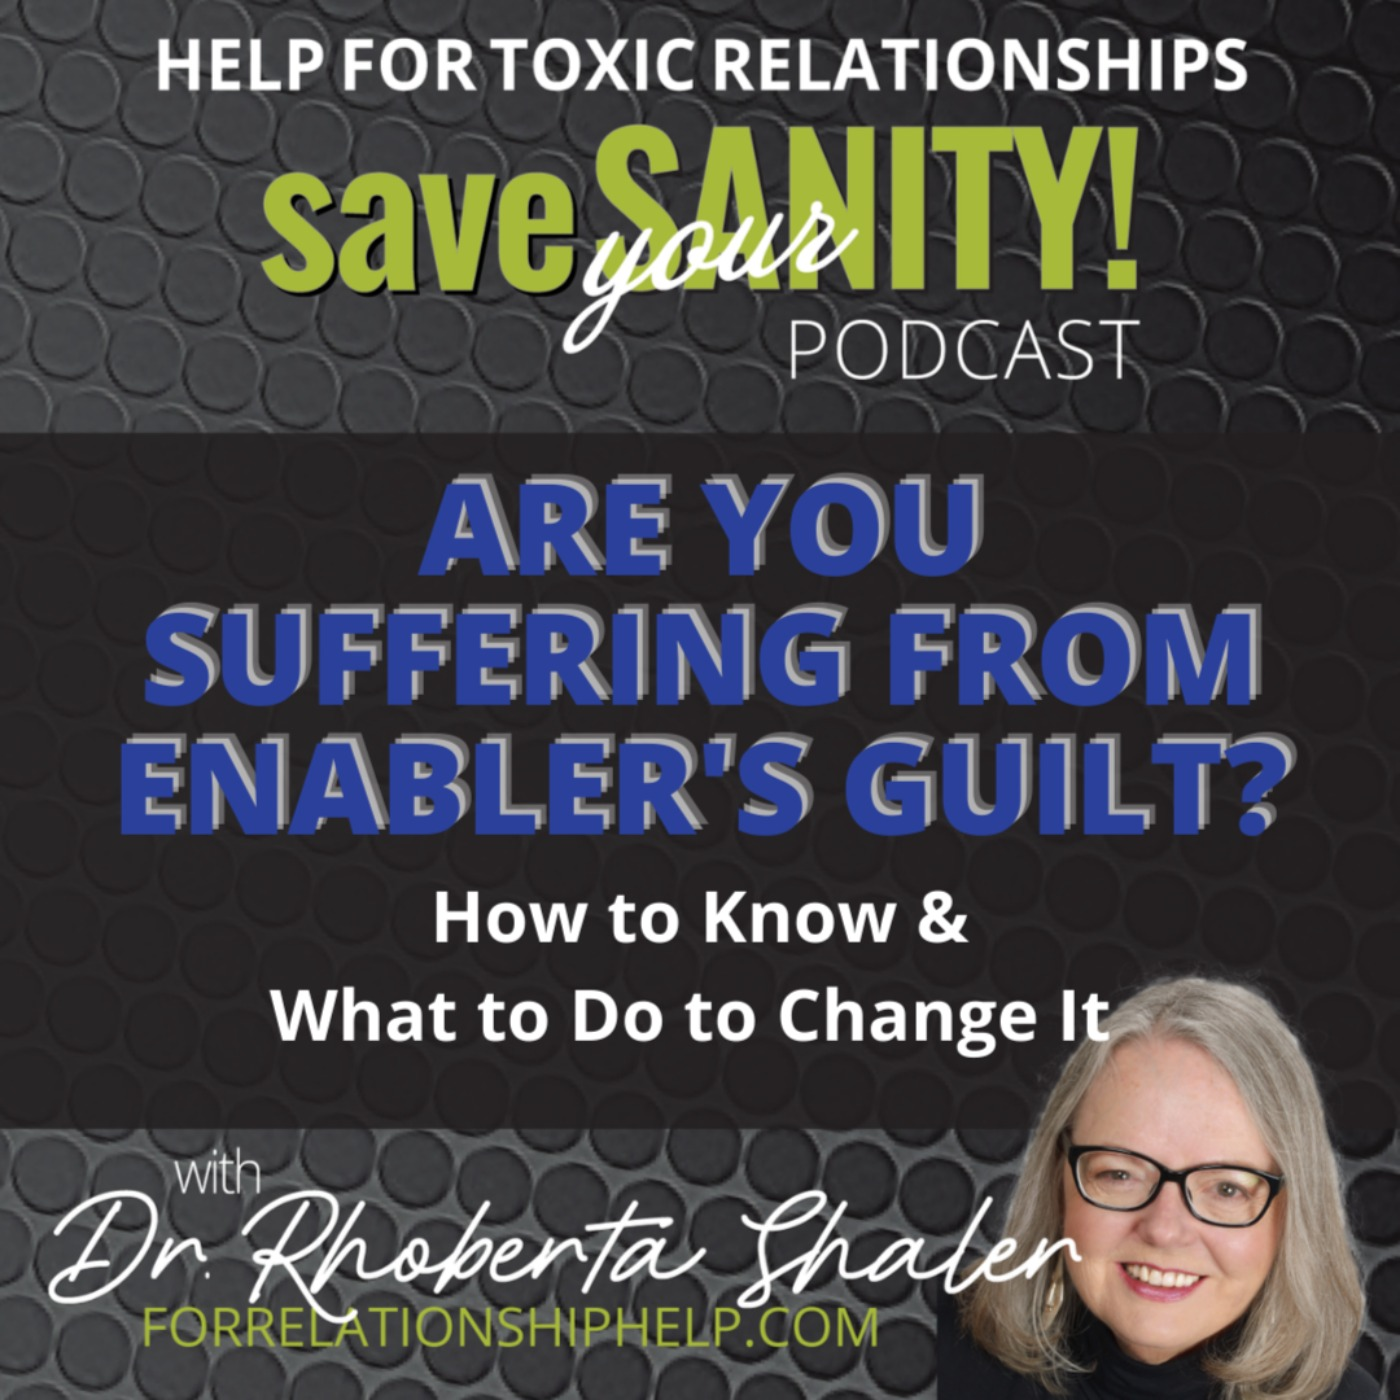 ARE YOU SUFFERING FROM ENABLER'S GUILT?